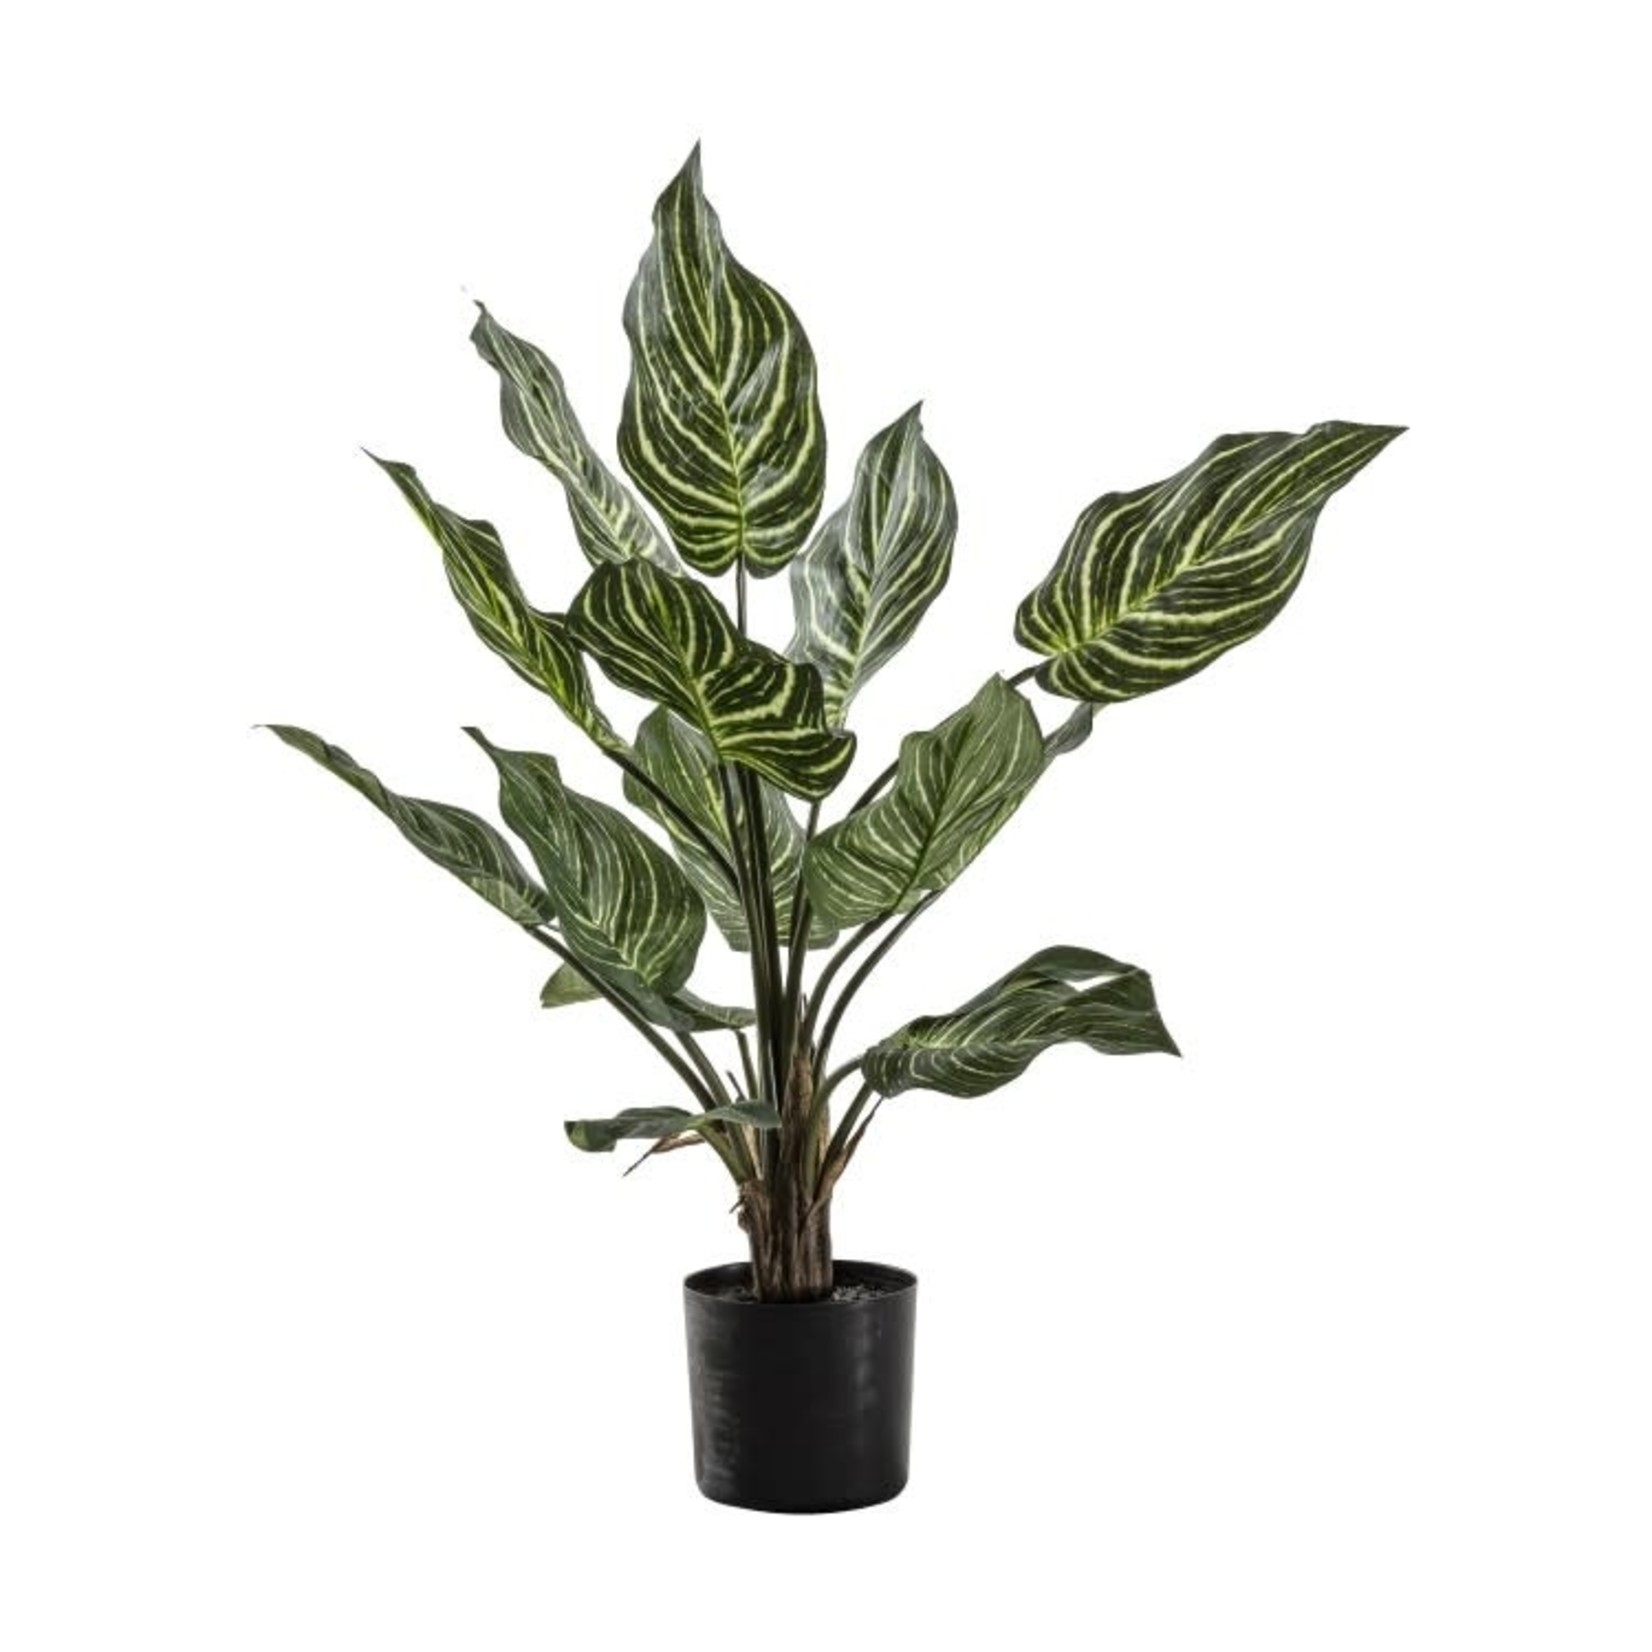 GD Calathea with 15 Leaves